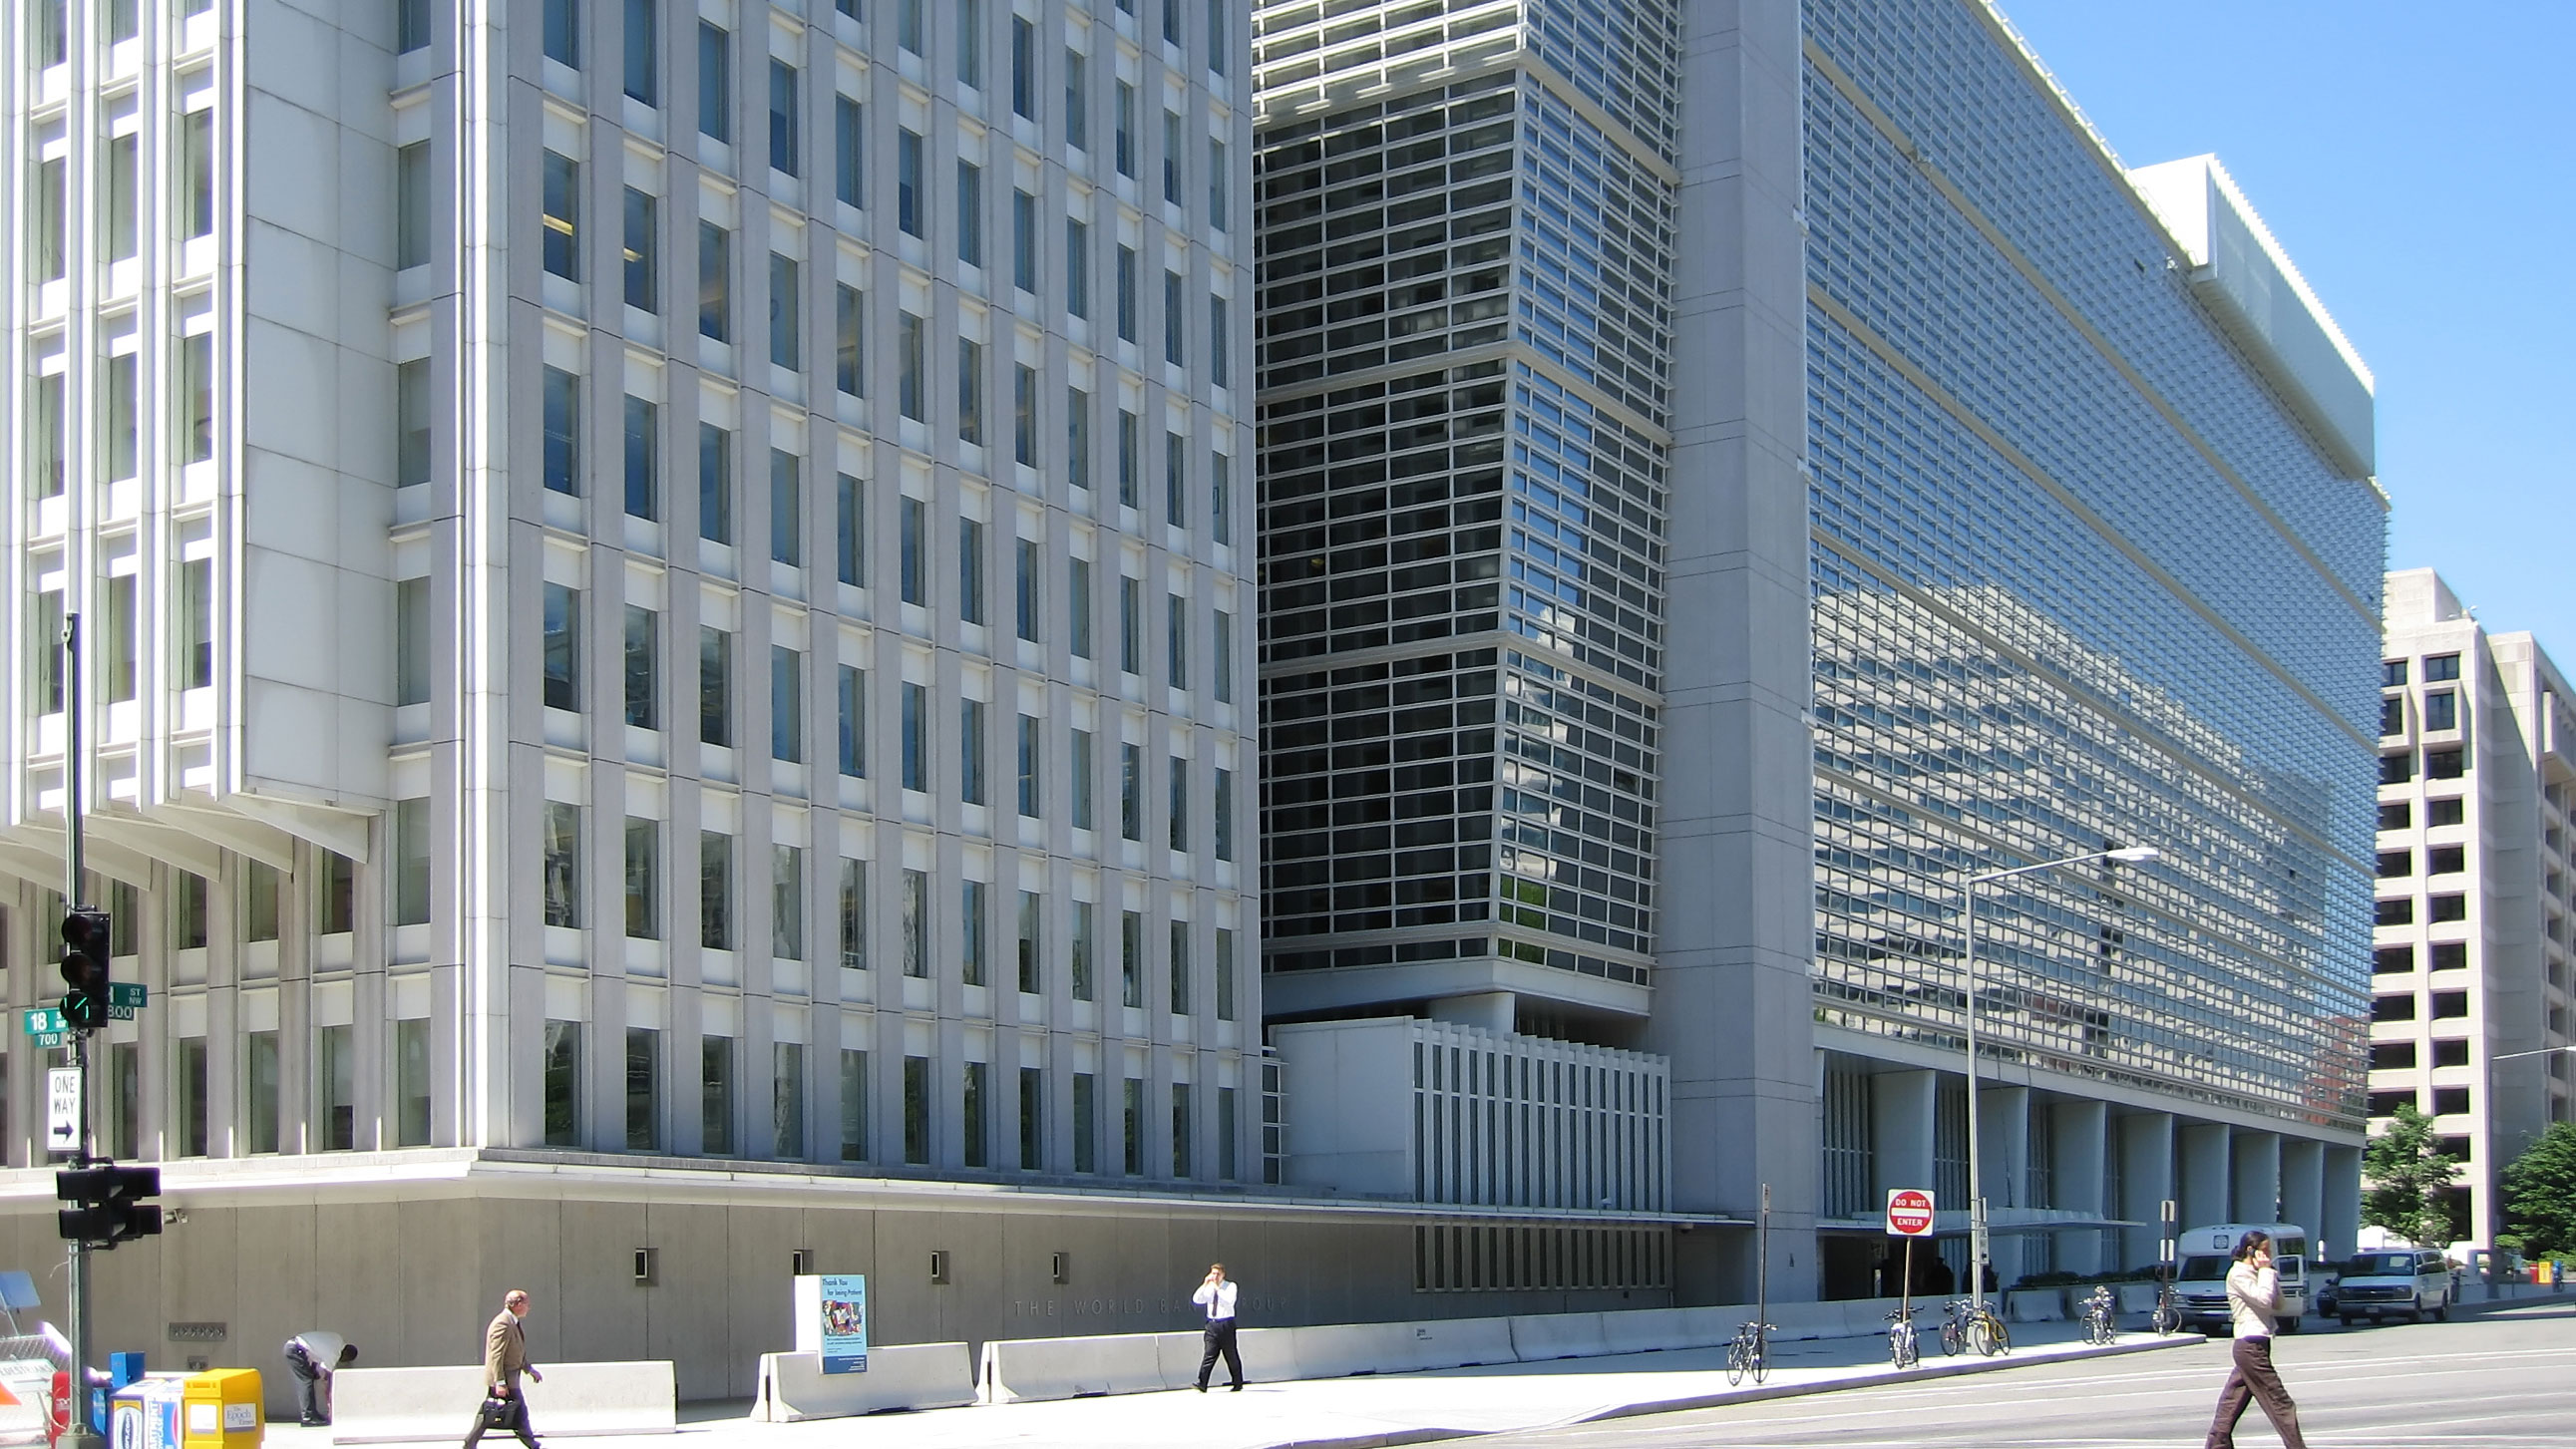 World Bank Group building in Washington DC